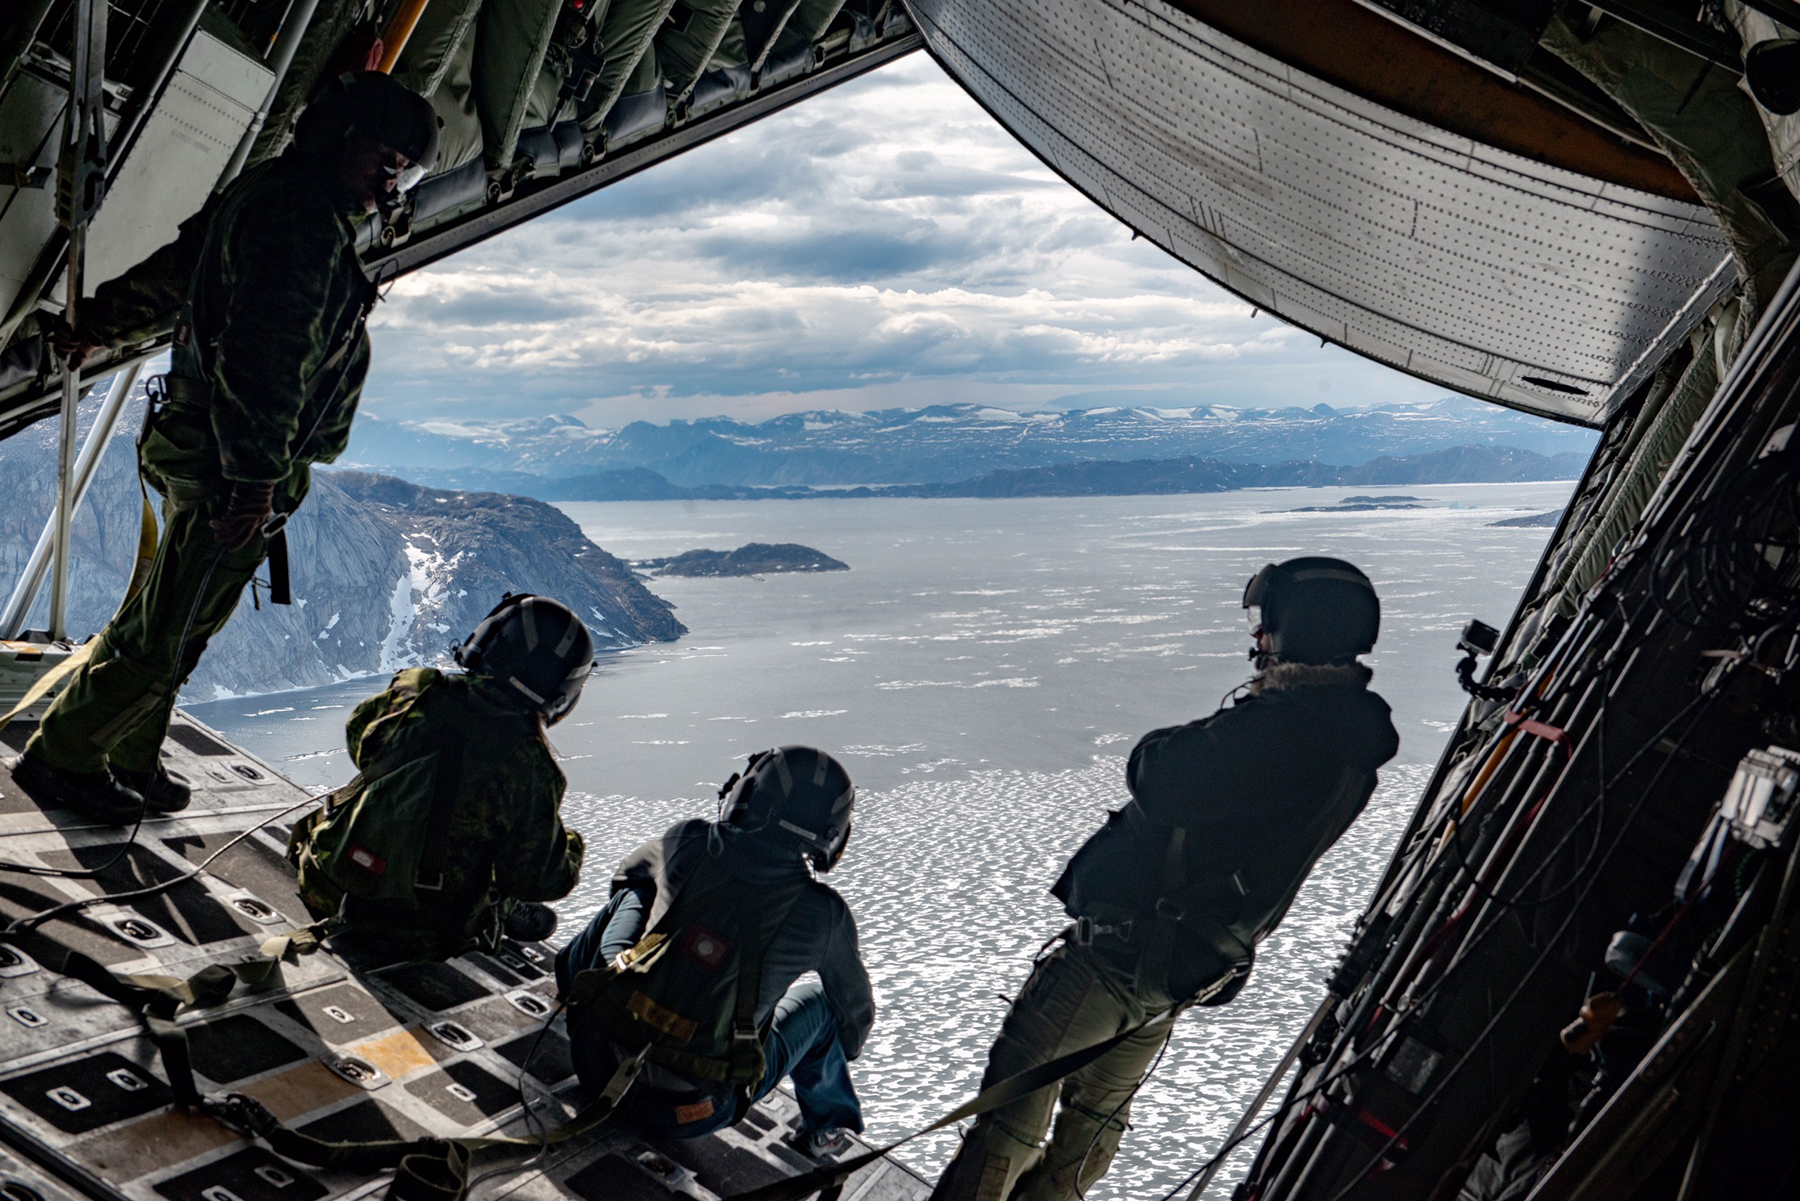 From left, Corporal Joe Gervais, Corporal J.F. Paradis, Lieutenant Junior Grade Bryan Brasher, and Master Corporal Marc Lapensee, check out the stellar view of Baffin Island from the ramp of a CC-130 Hercules aircraft during the annual Arctic Buoy drop mission. PHOTO: Ignatius Rigor